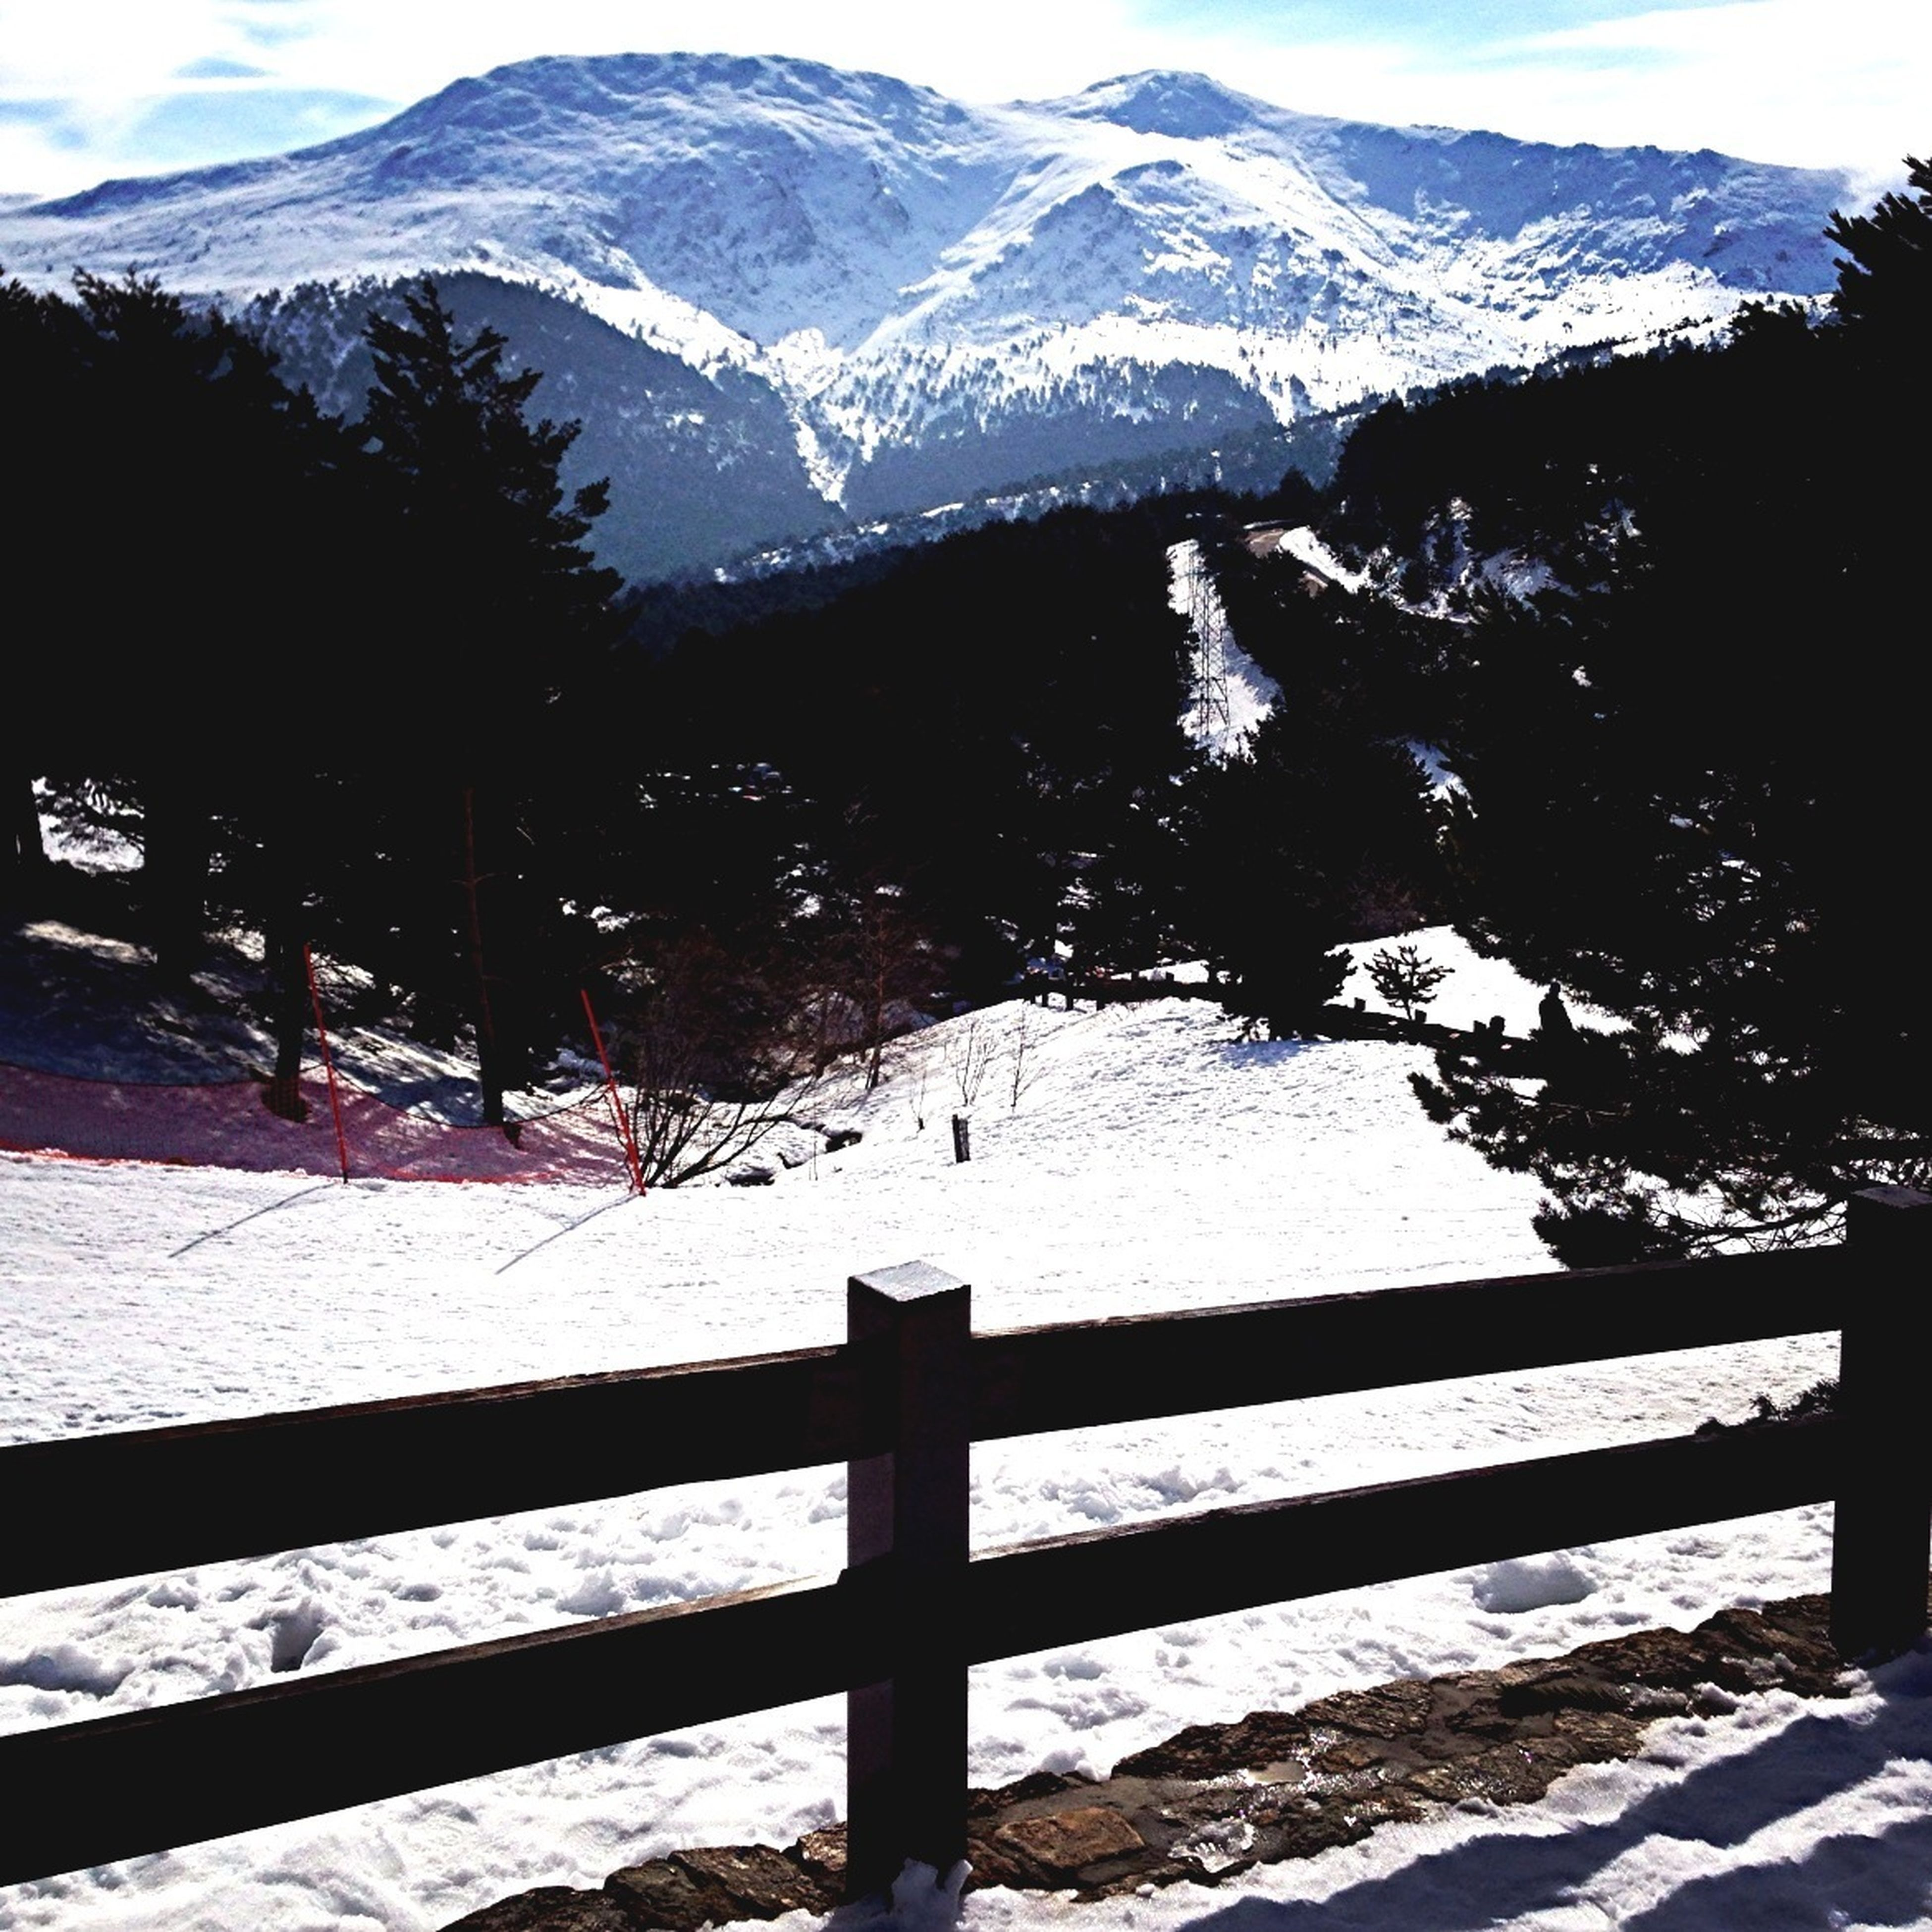 mountain, mountain range, snow, winter, cold temperature, tranquil scene, tranquility, scenics, beauty in nature, season, nature, landscape, snowcapped mountain, tree, railing, weather, non-urban scene, sky, covering, outdoors